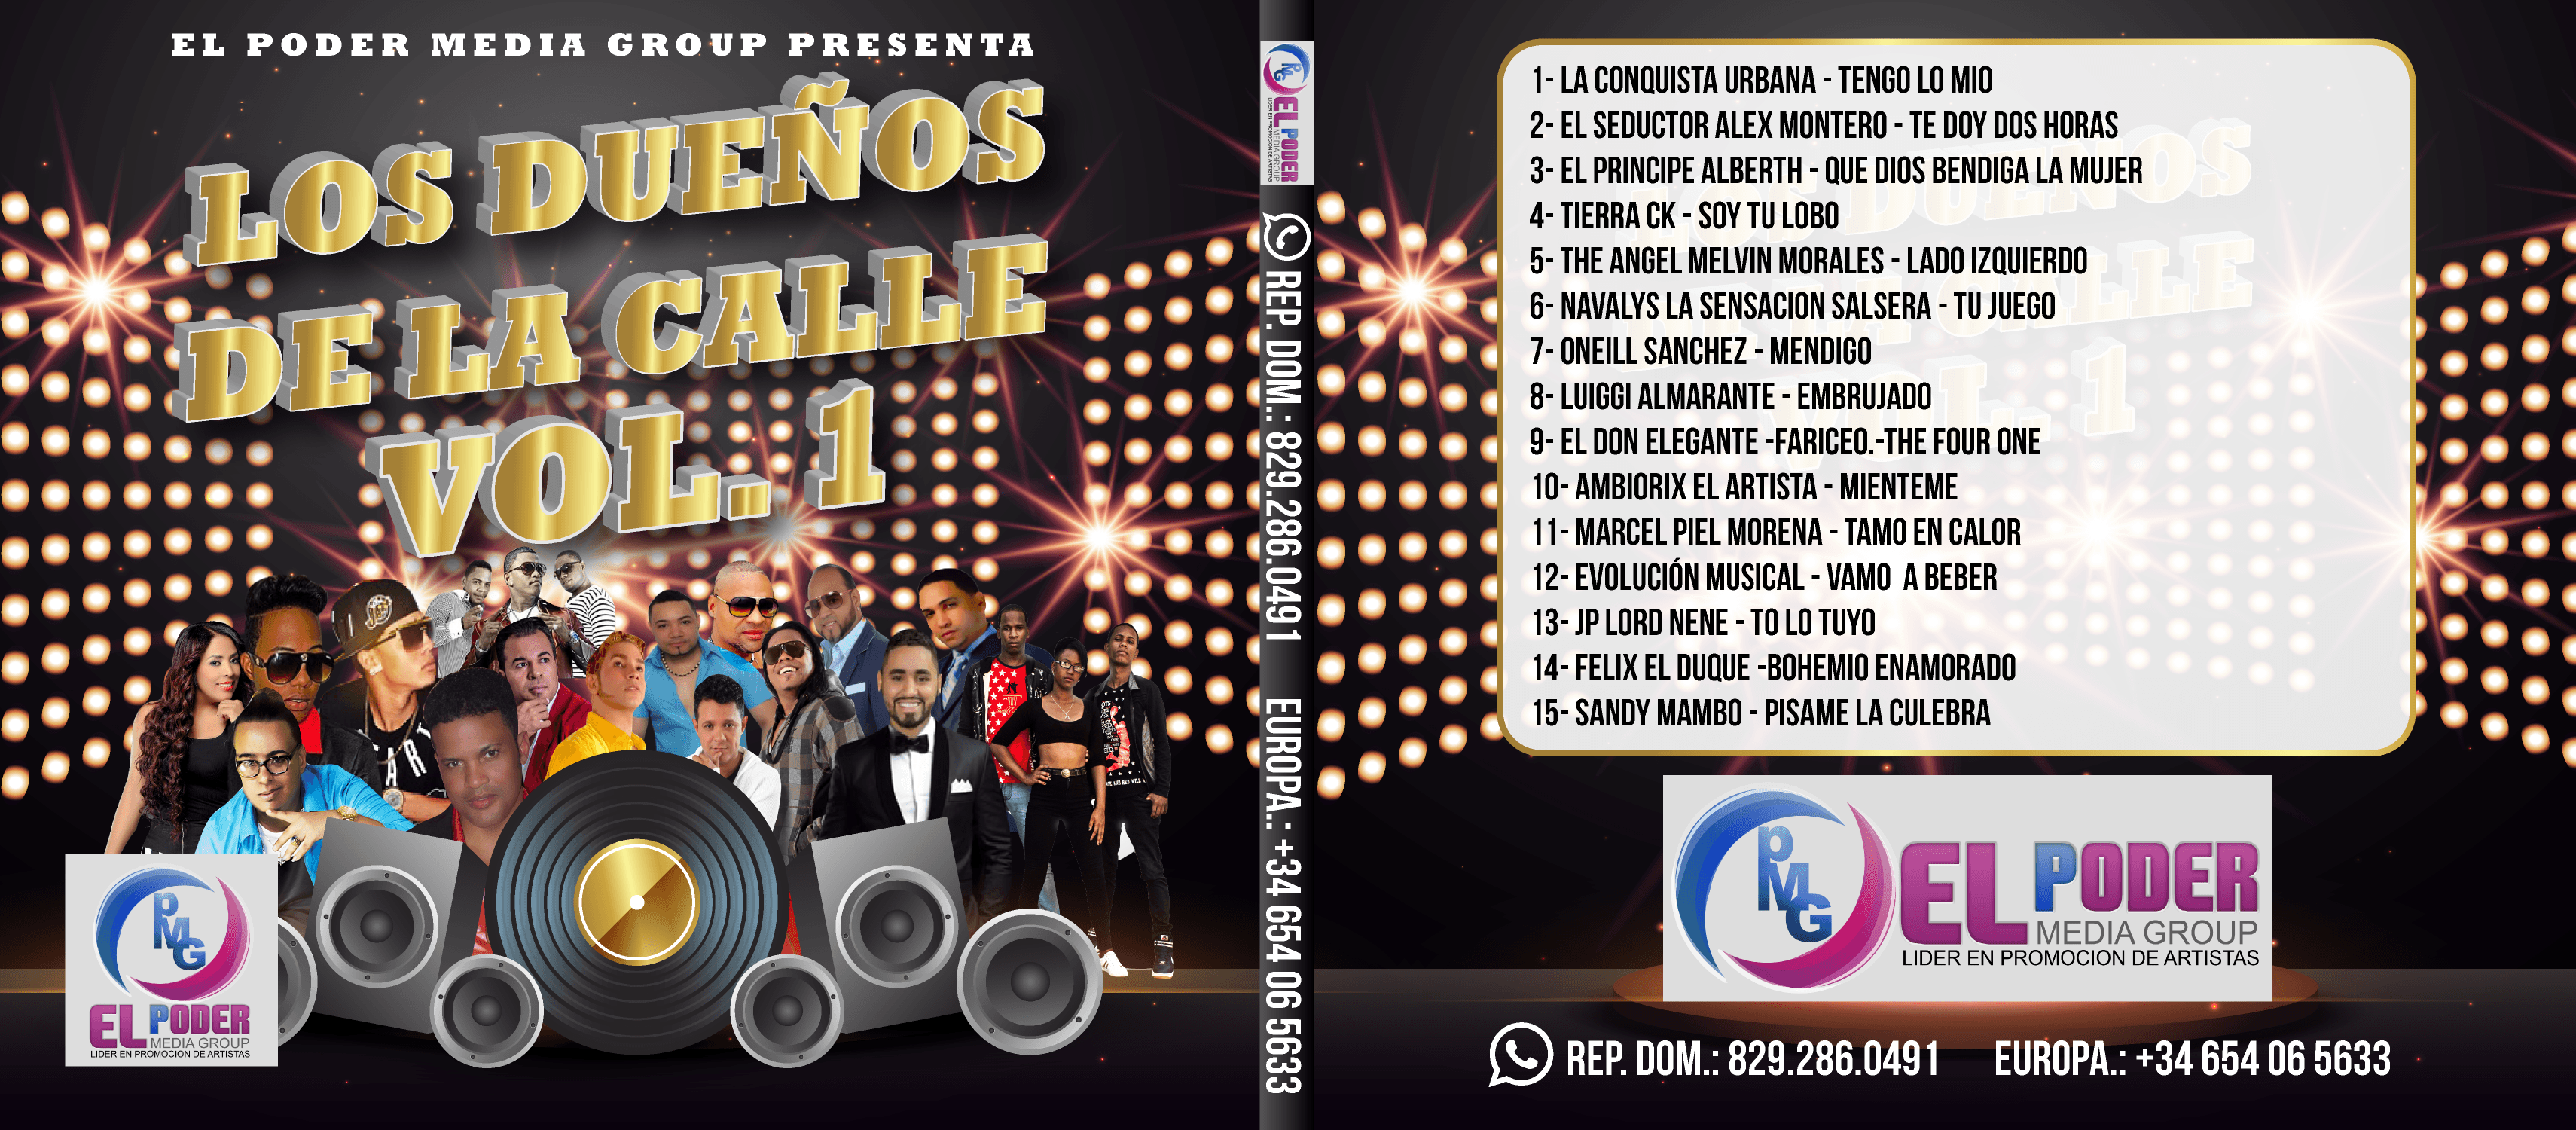 CD: Los Dueños De La Calle Vol. 1 by El Poder Media Group